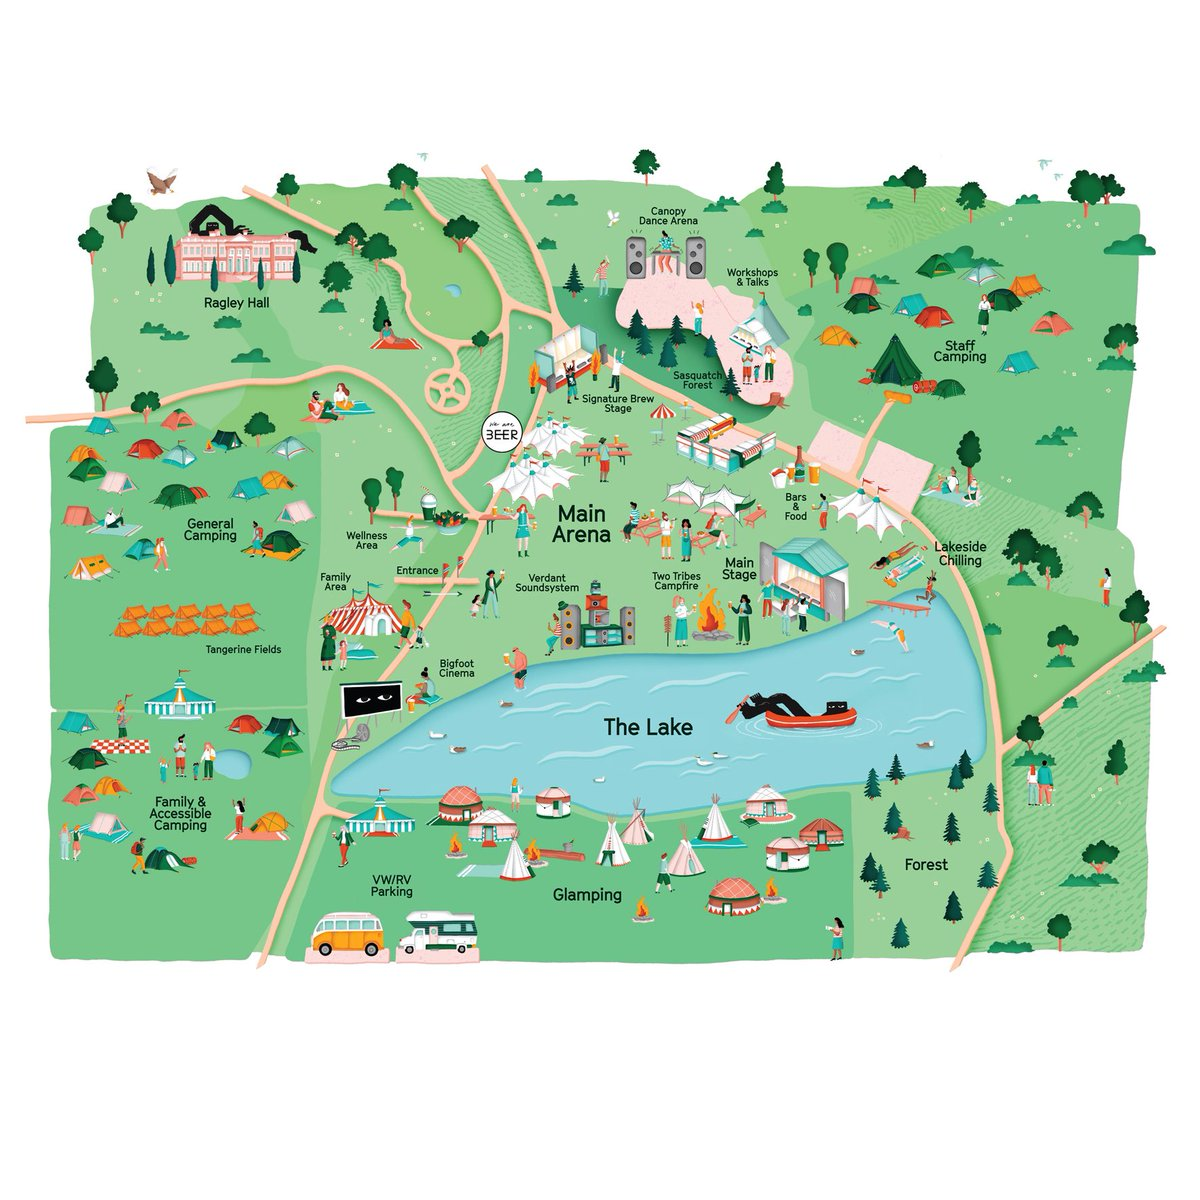 Illustrated festival site map for @BigfootFest and @weare_BEER. A cheery commission for a dreary Jan! 👣🎉🍻  #illustration #mapillustration #map #limitedcolourpalette #musicfestival #music #camping #craftbeer #summer #ragleyhall #bigfootfest